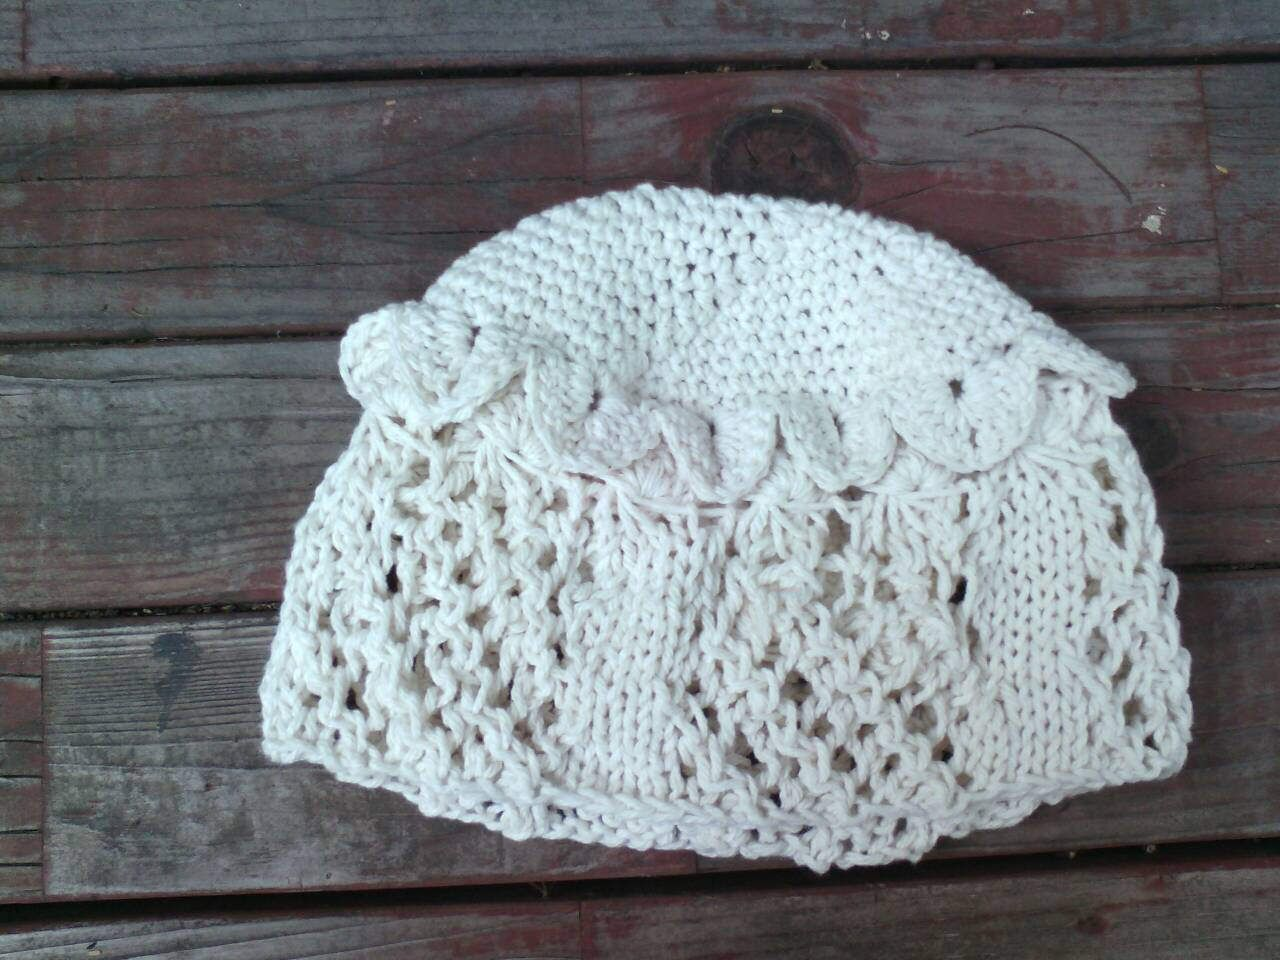 Cotton Knit Diagonal Madeira Lace Cloche with broomstick lace and ...